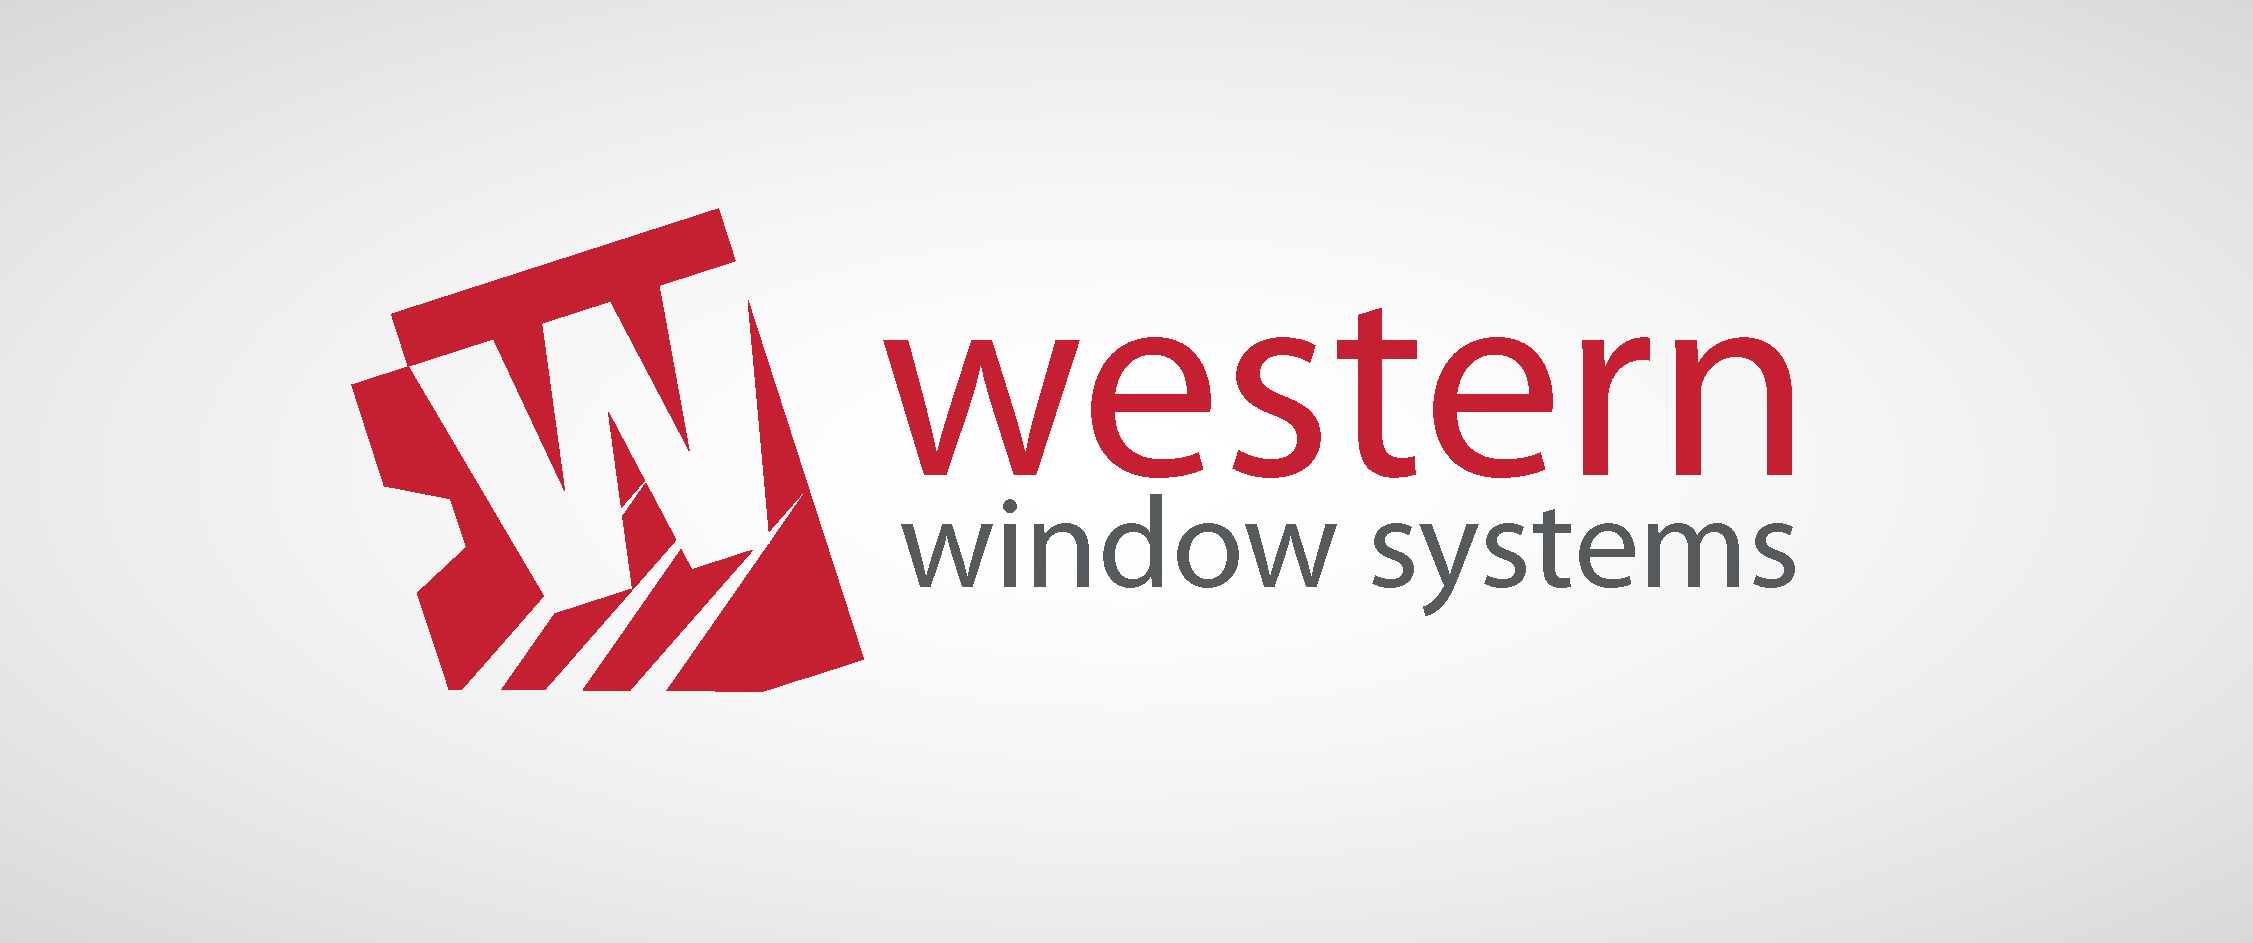 Western-website-logo.jpg